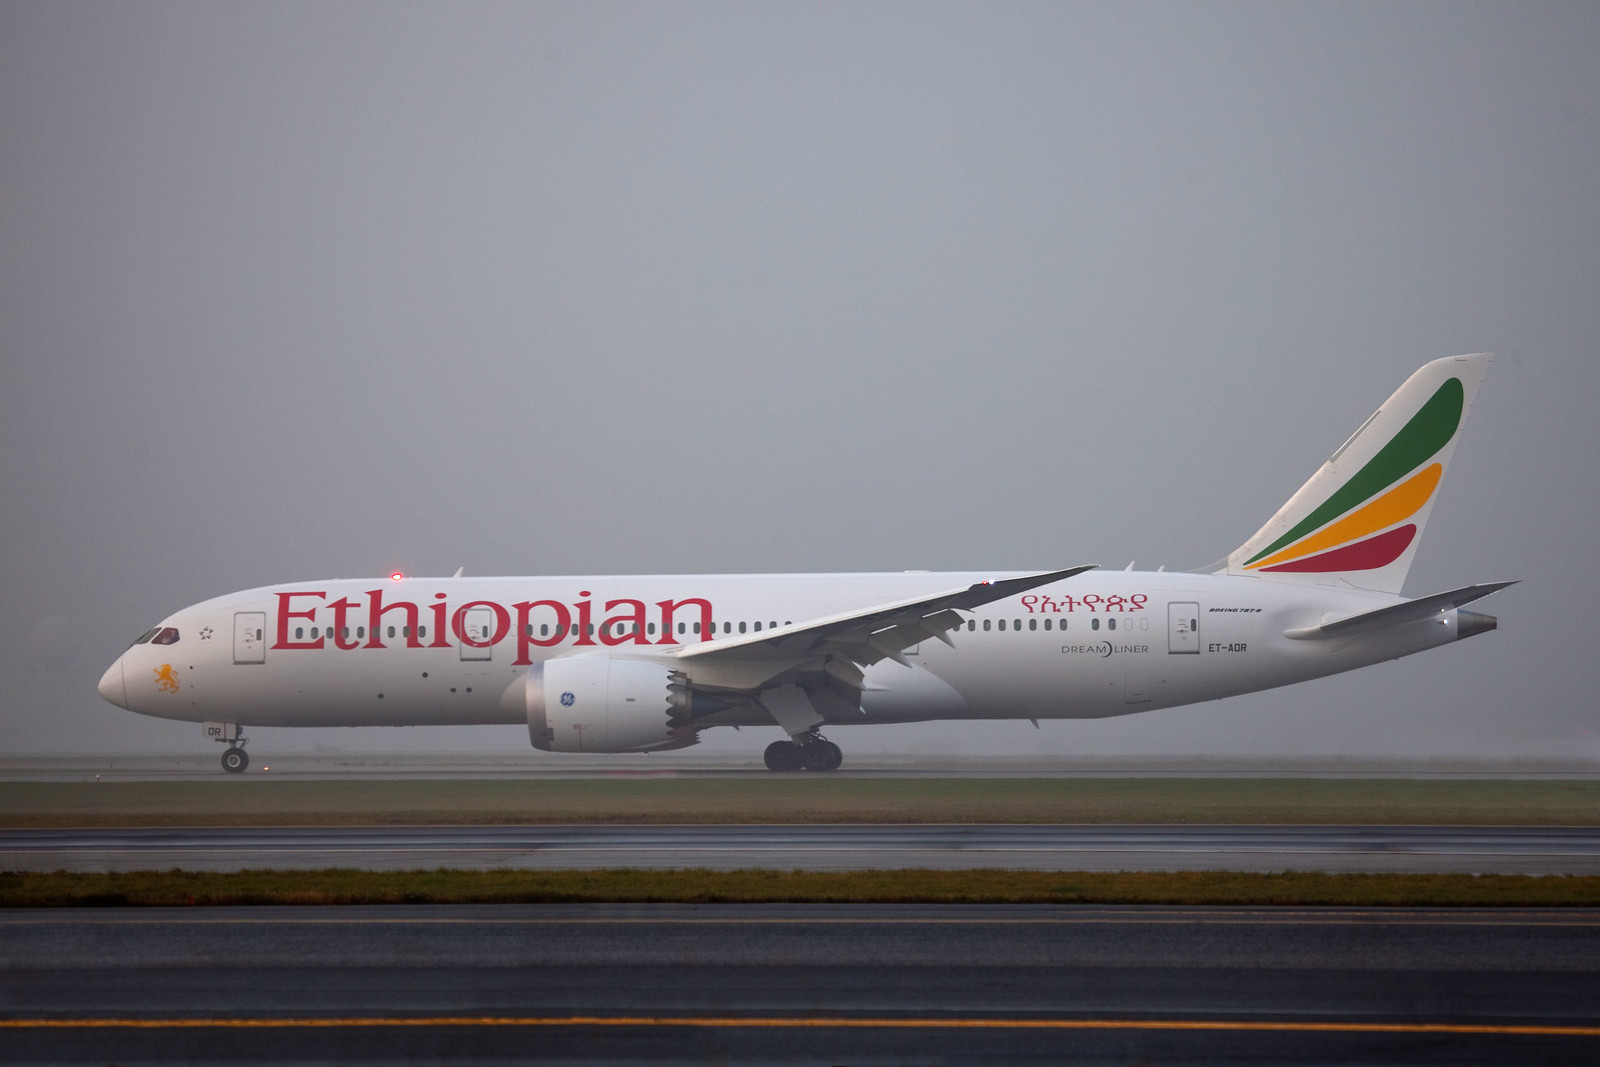 Ethiopian Airlines Canada Marks Five Years In Toronto